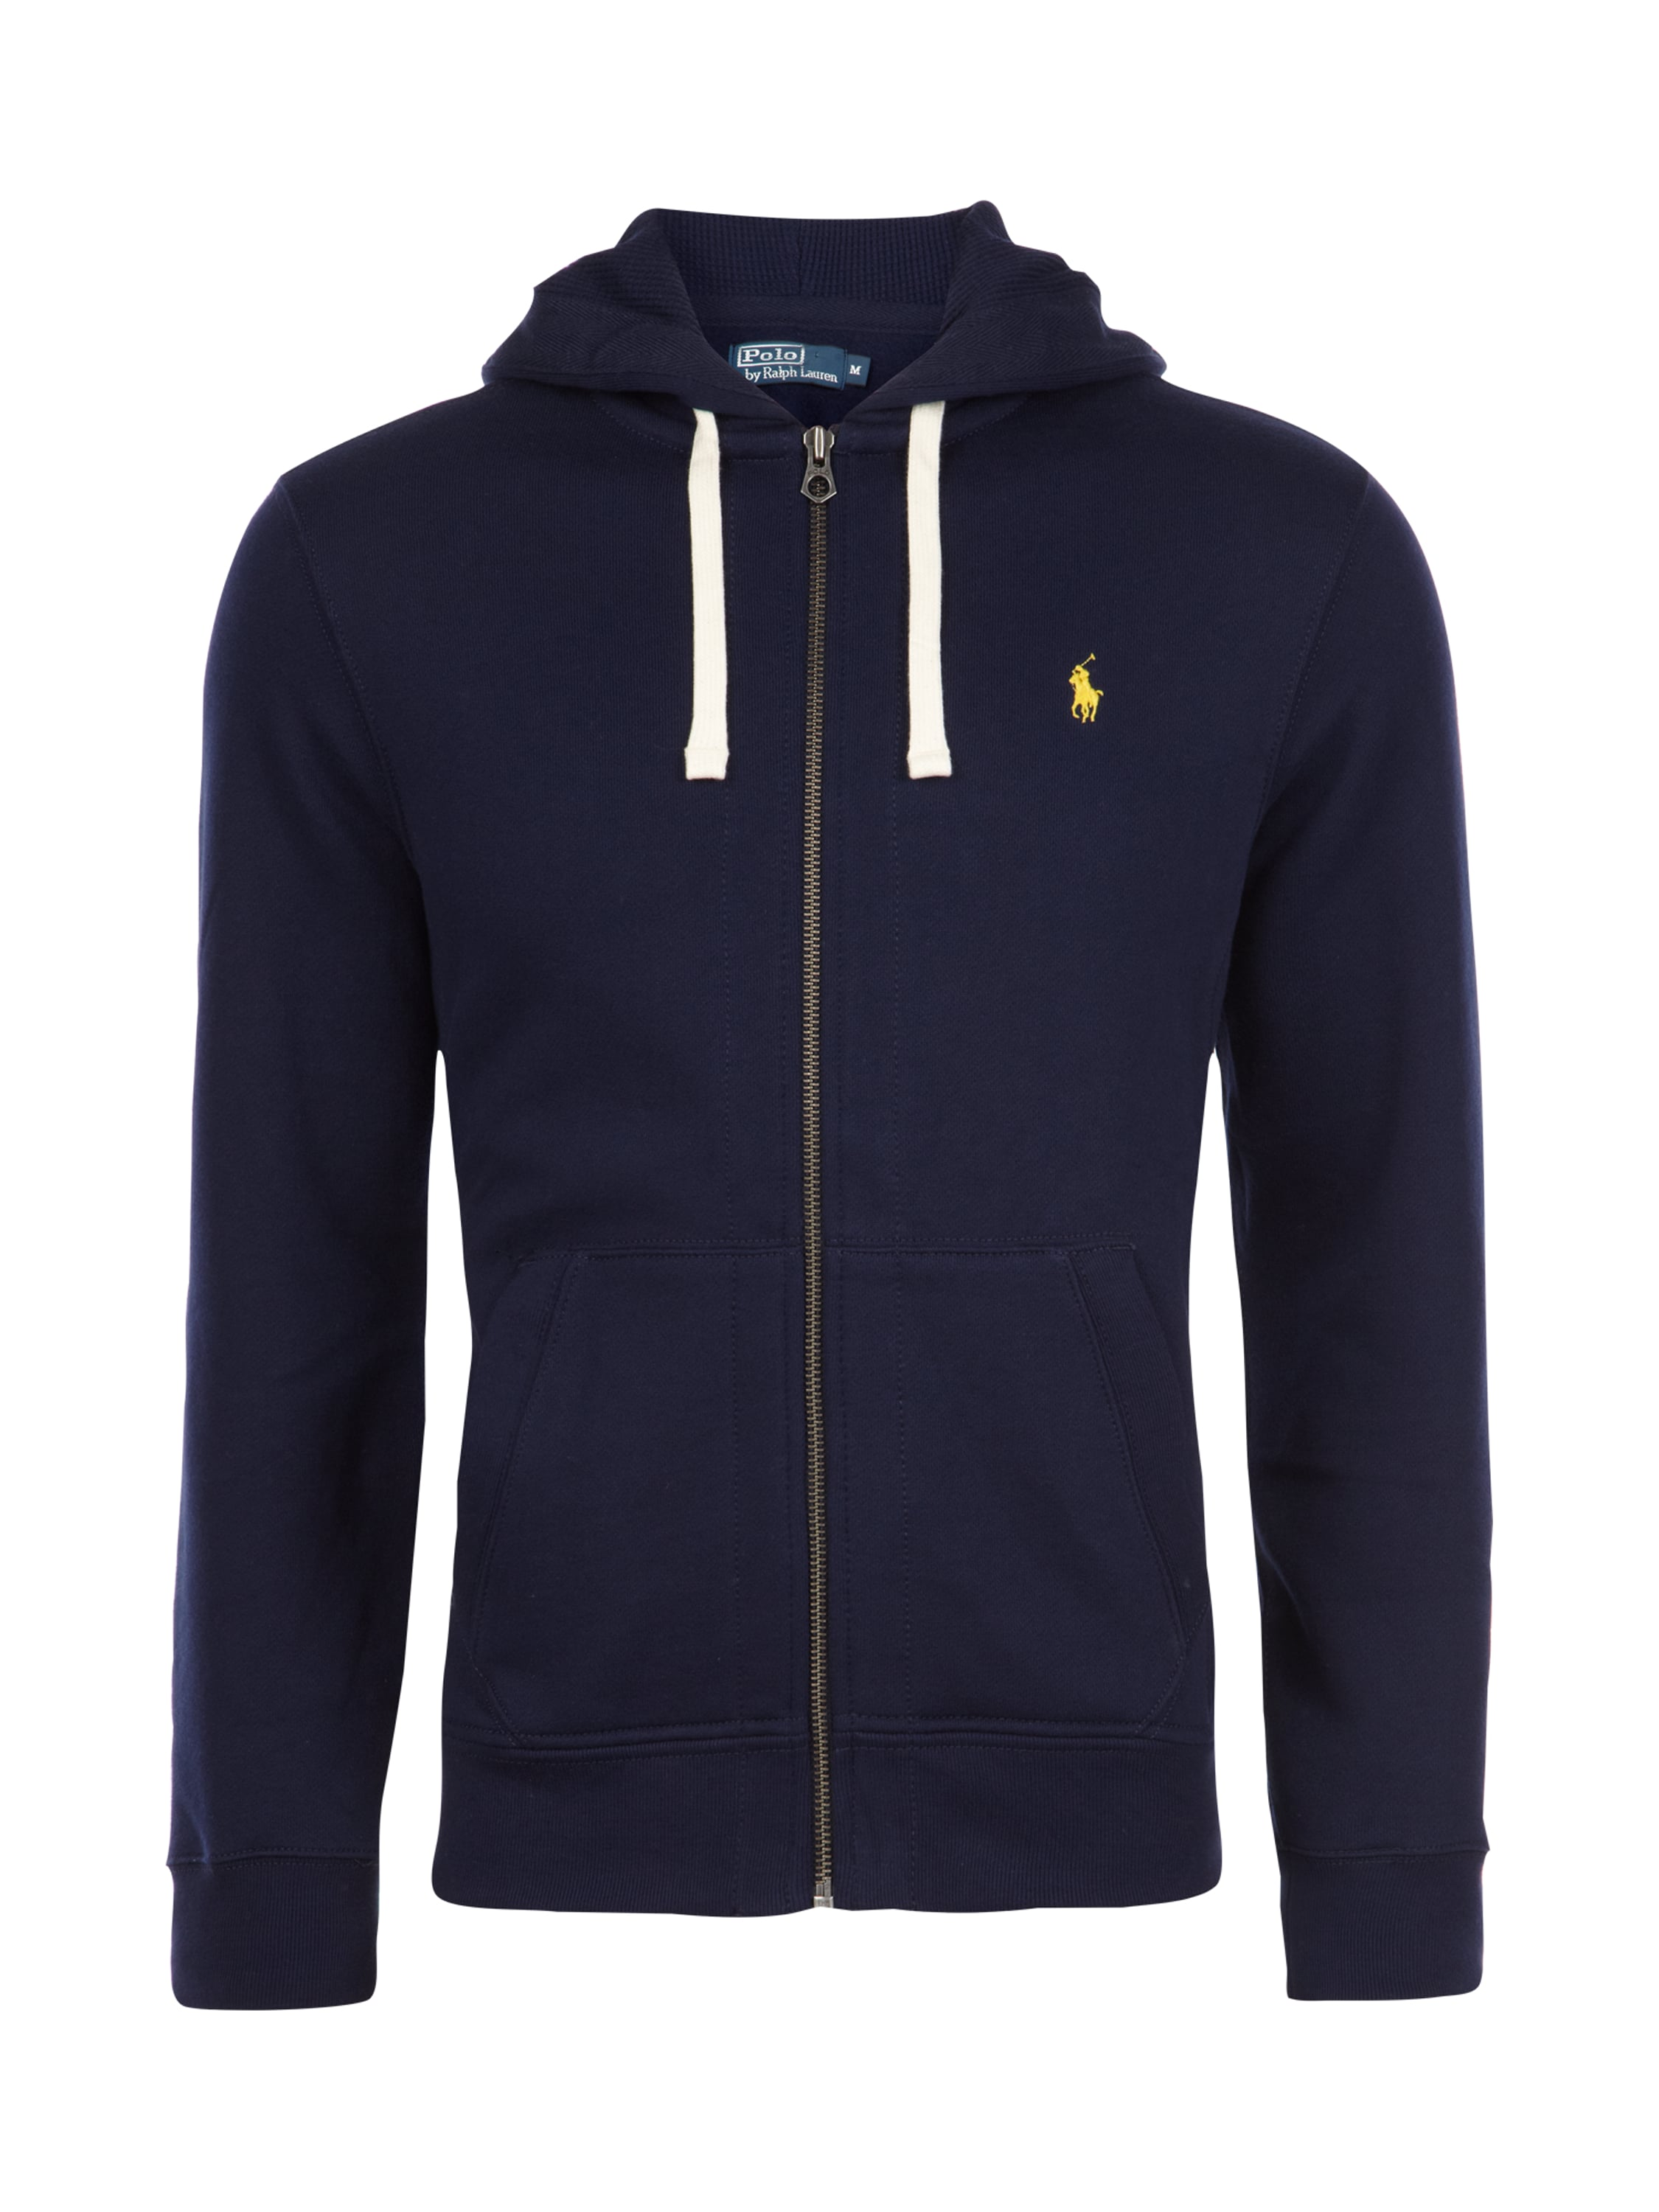 polo ralph lauren sweatjacke mit logo stickerei in blau. Black Bedroom Furniture Sets. Home Design Ideas